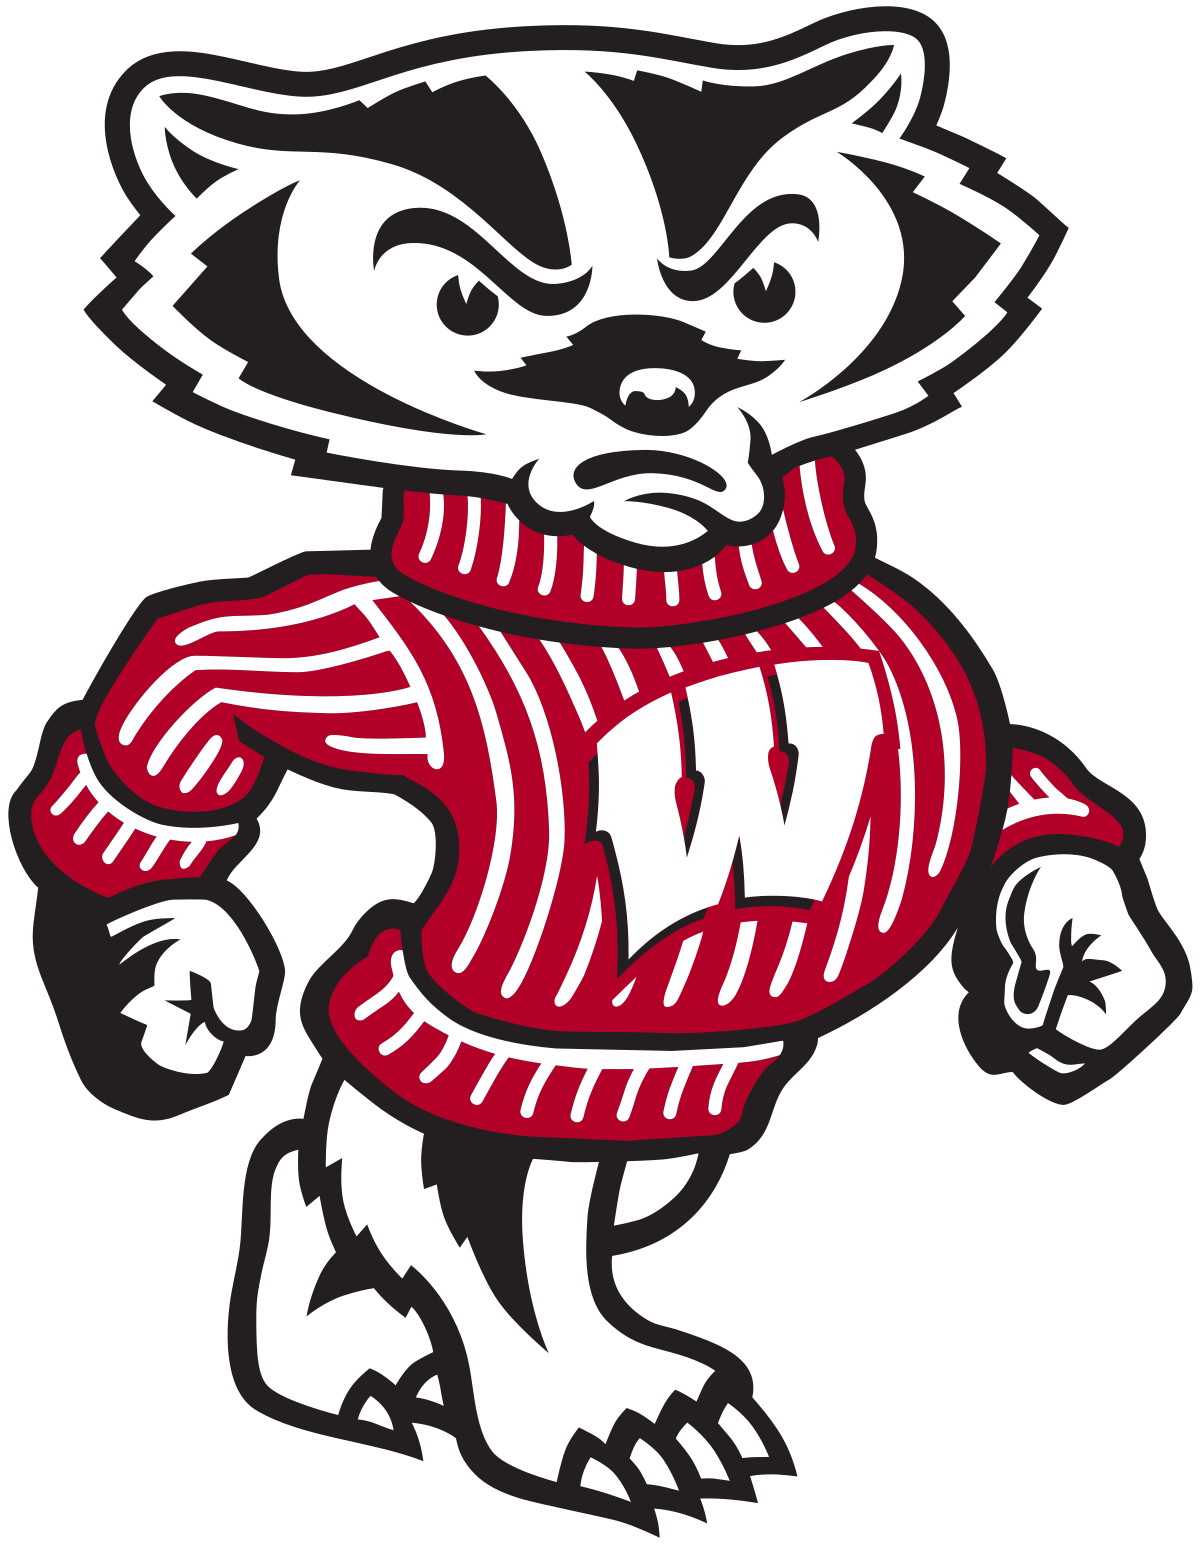 Bucky wikipedia . Racoon clipart badger